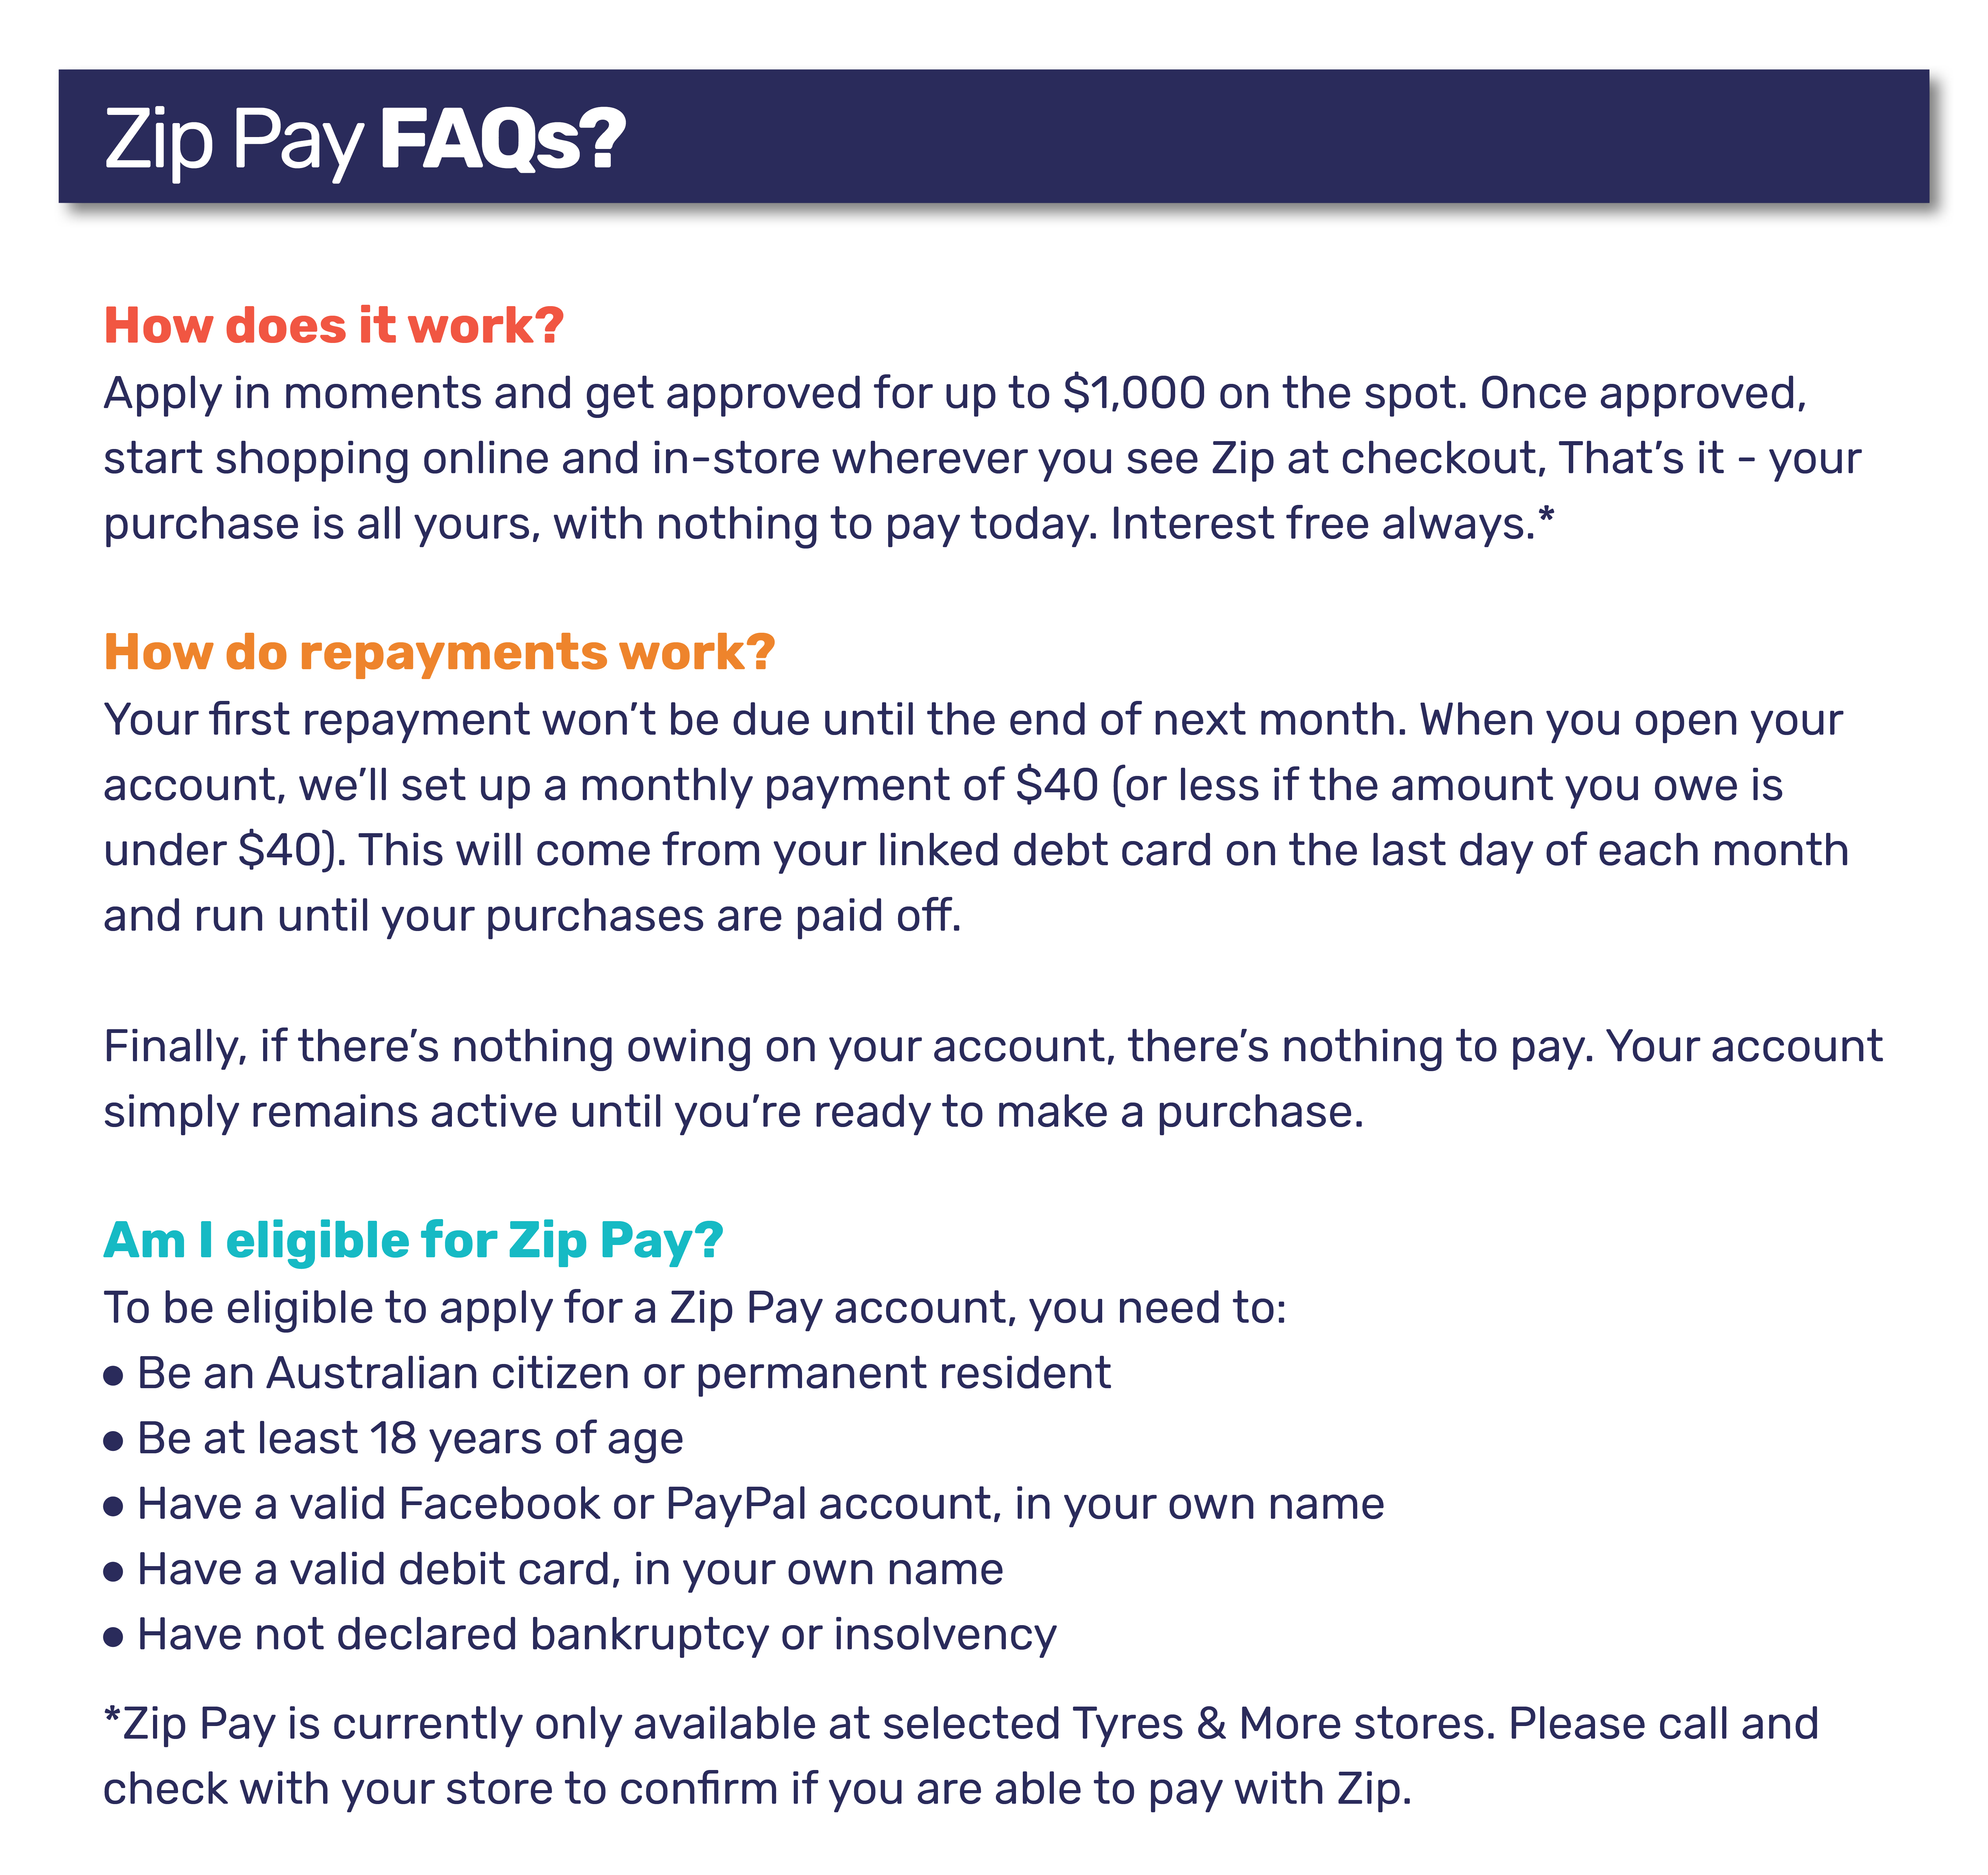 Zip Pay FAQs